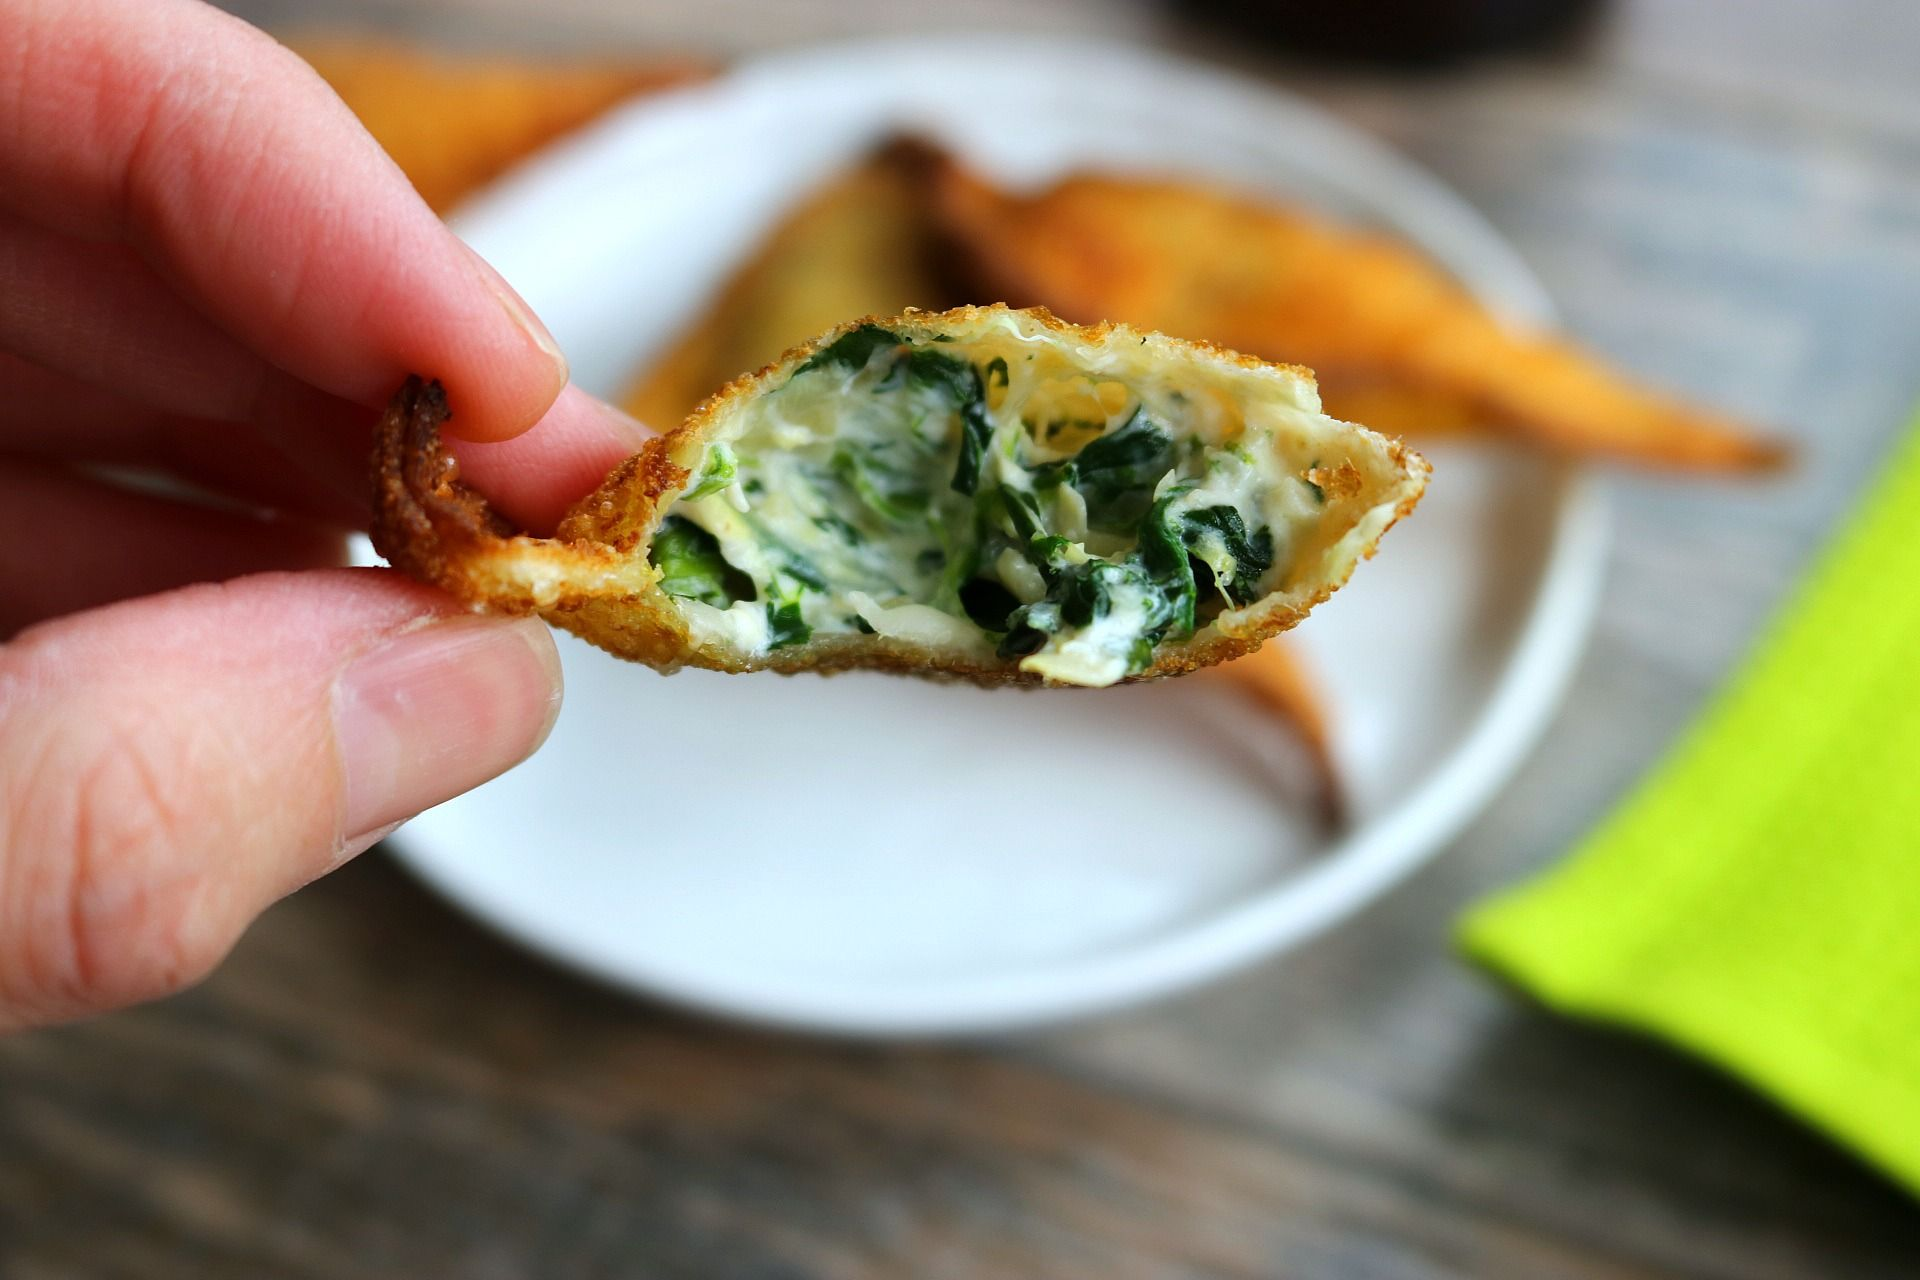 Spinach Artichoke Wontons The Perfect Game Day Snack Recipe Spinach Artichoke Recipes Food